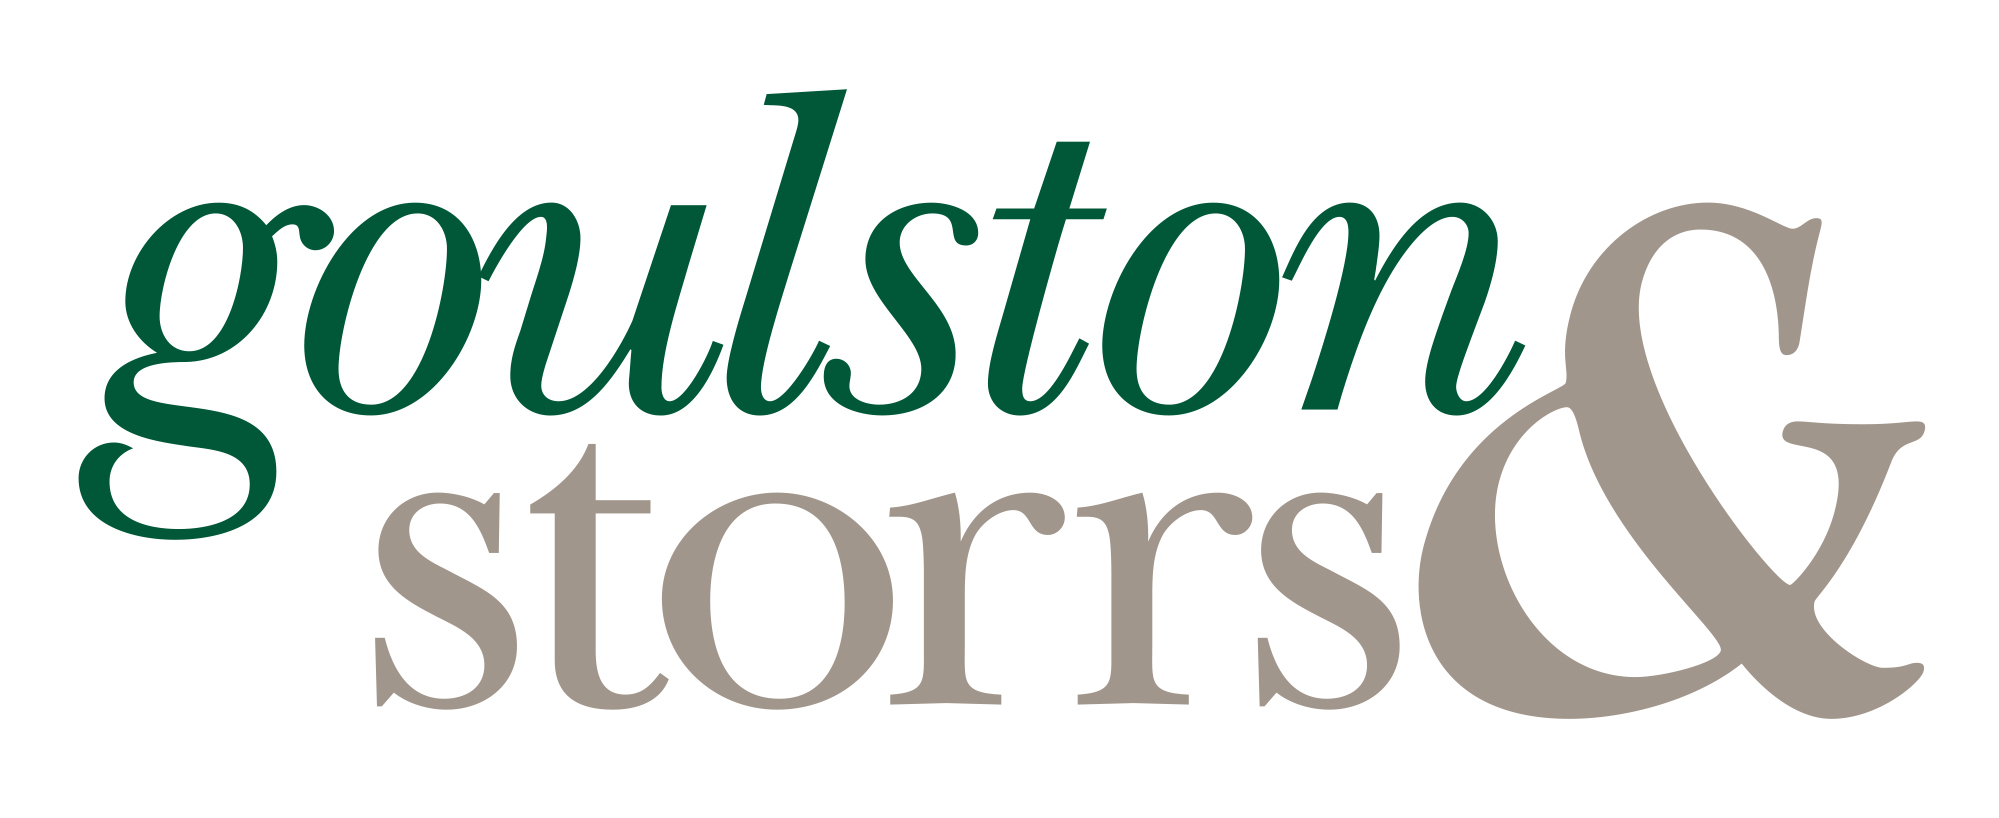 Goulston & Storrs